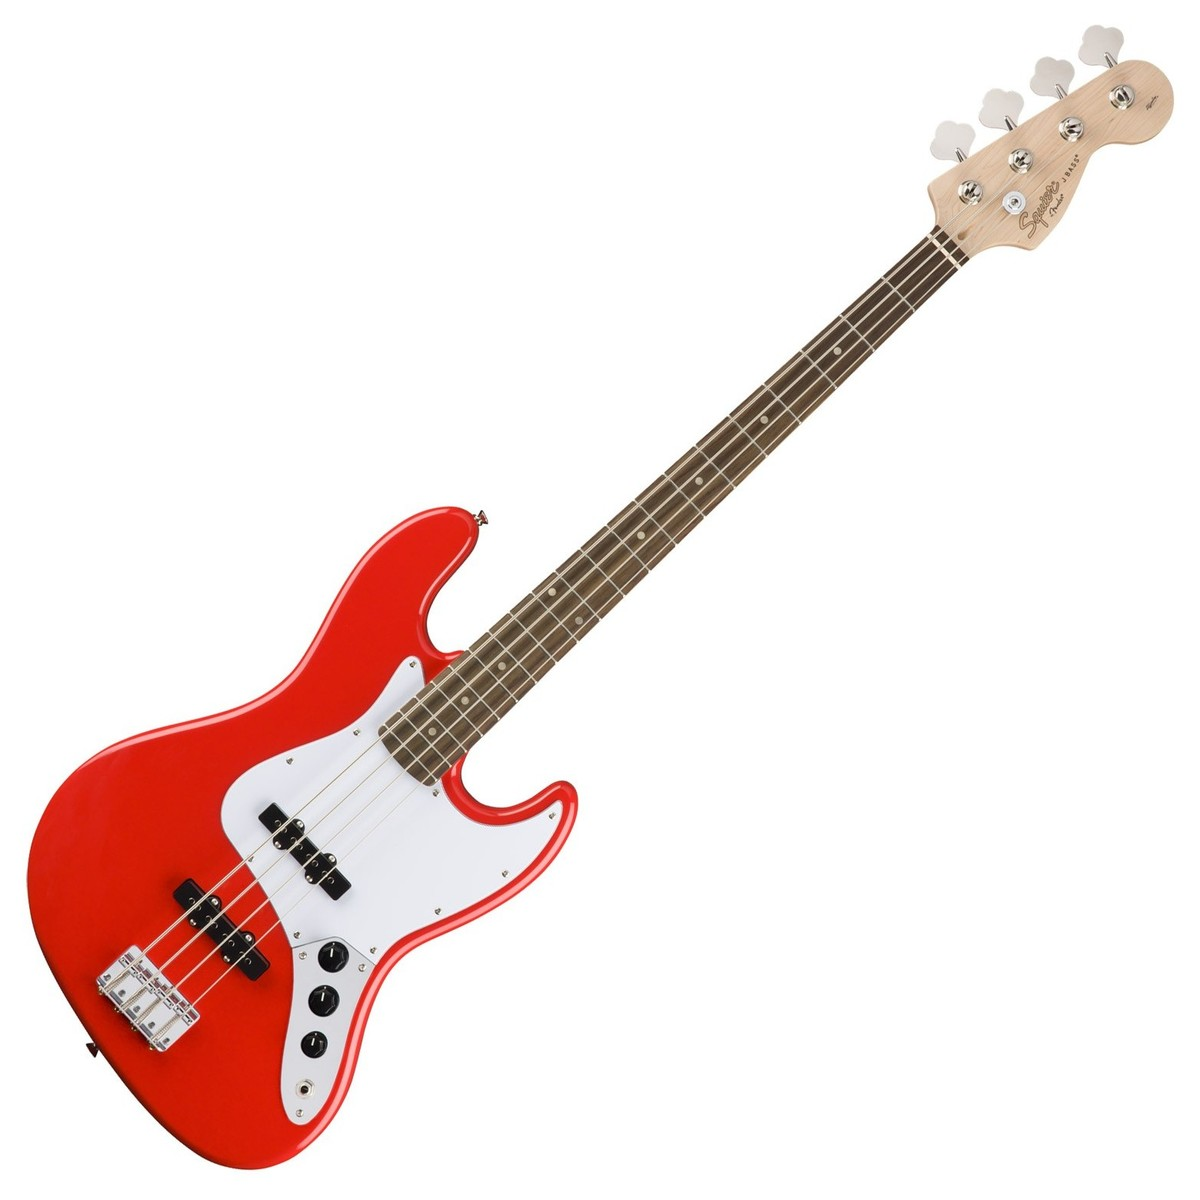 squier by fender affinity jazz bass guitar race red at. Black Bedroom Furniture Sets. Home Design Ideas